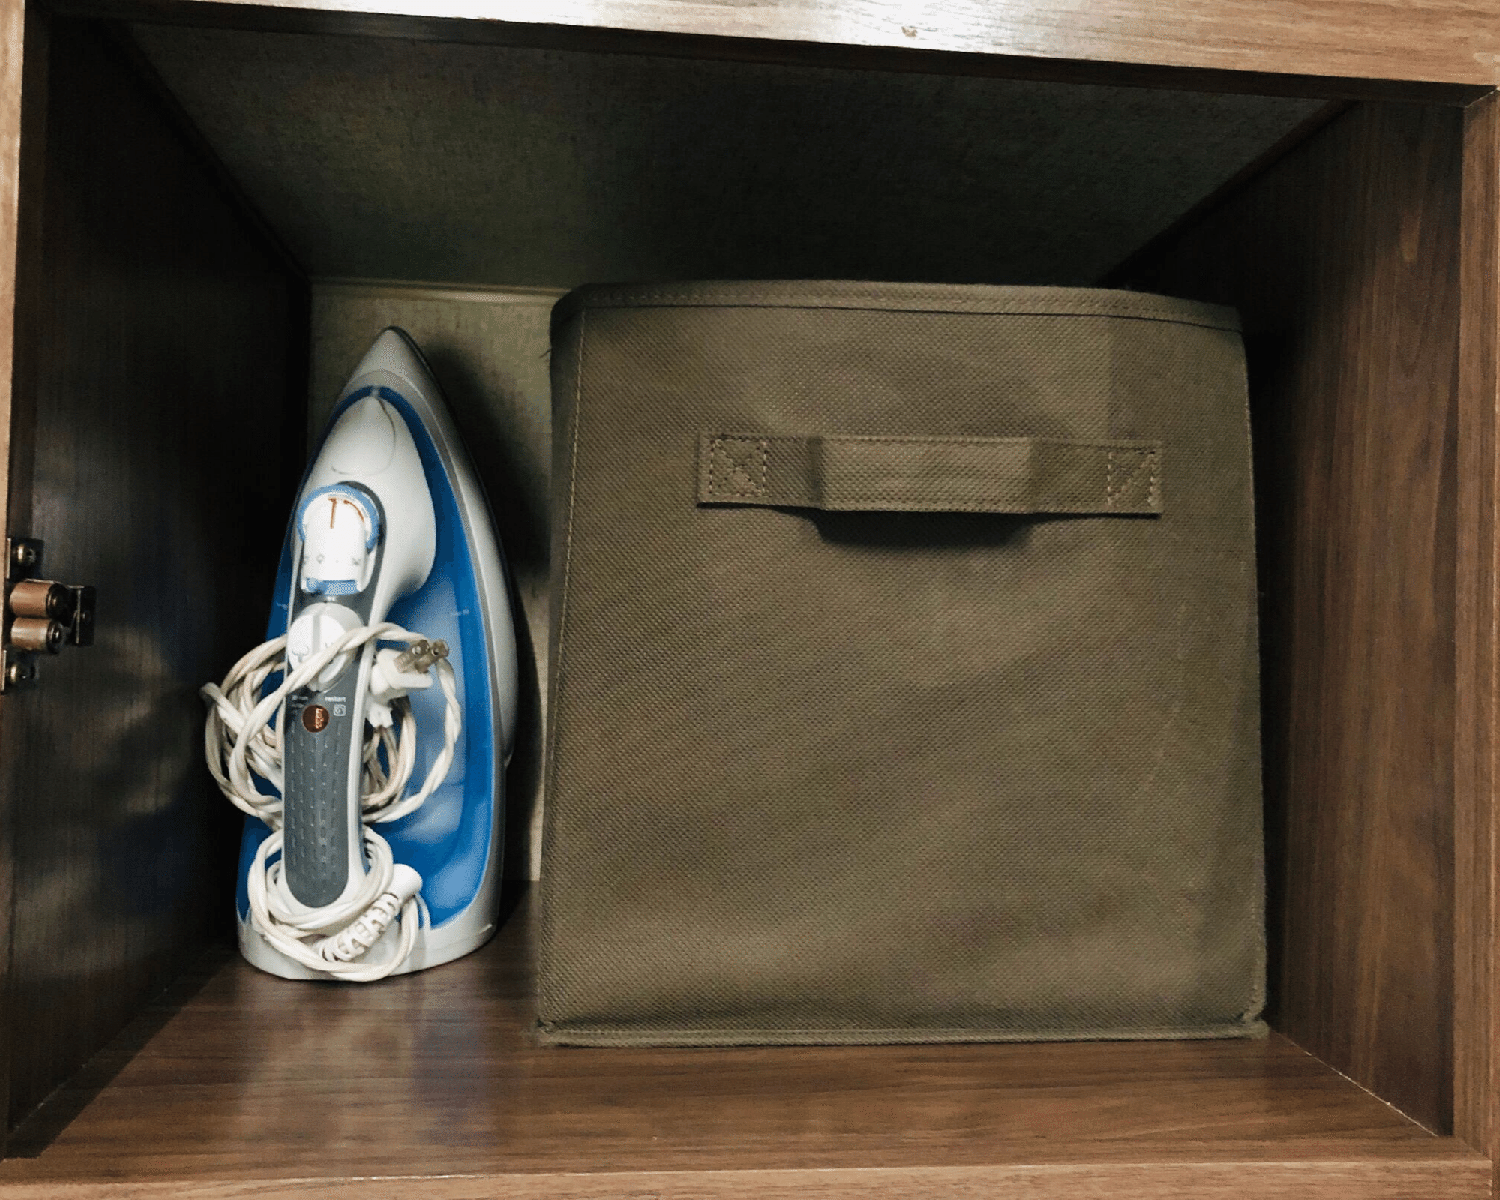 An iron and fabric bin stowed in a storage compartment.